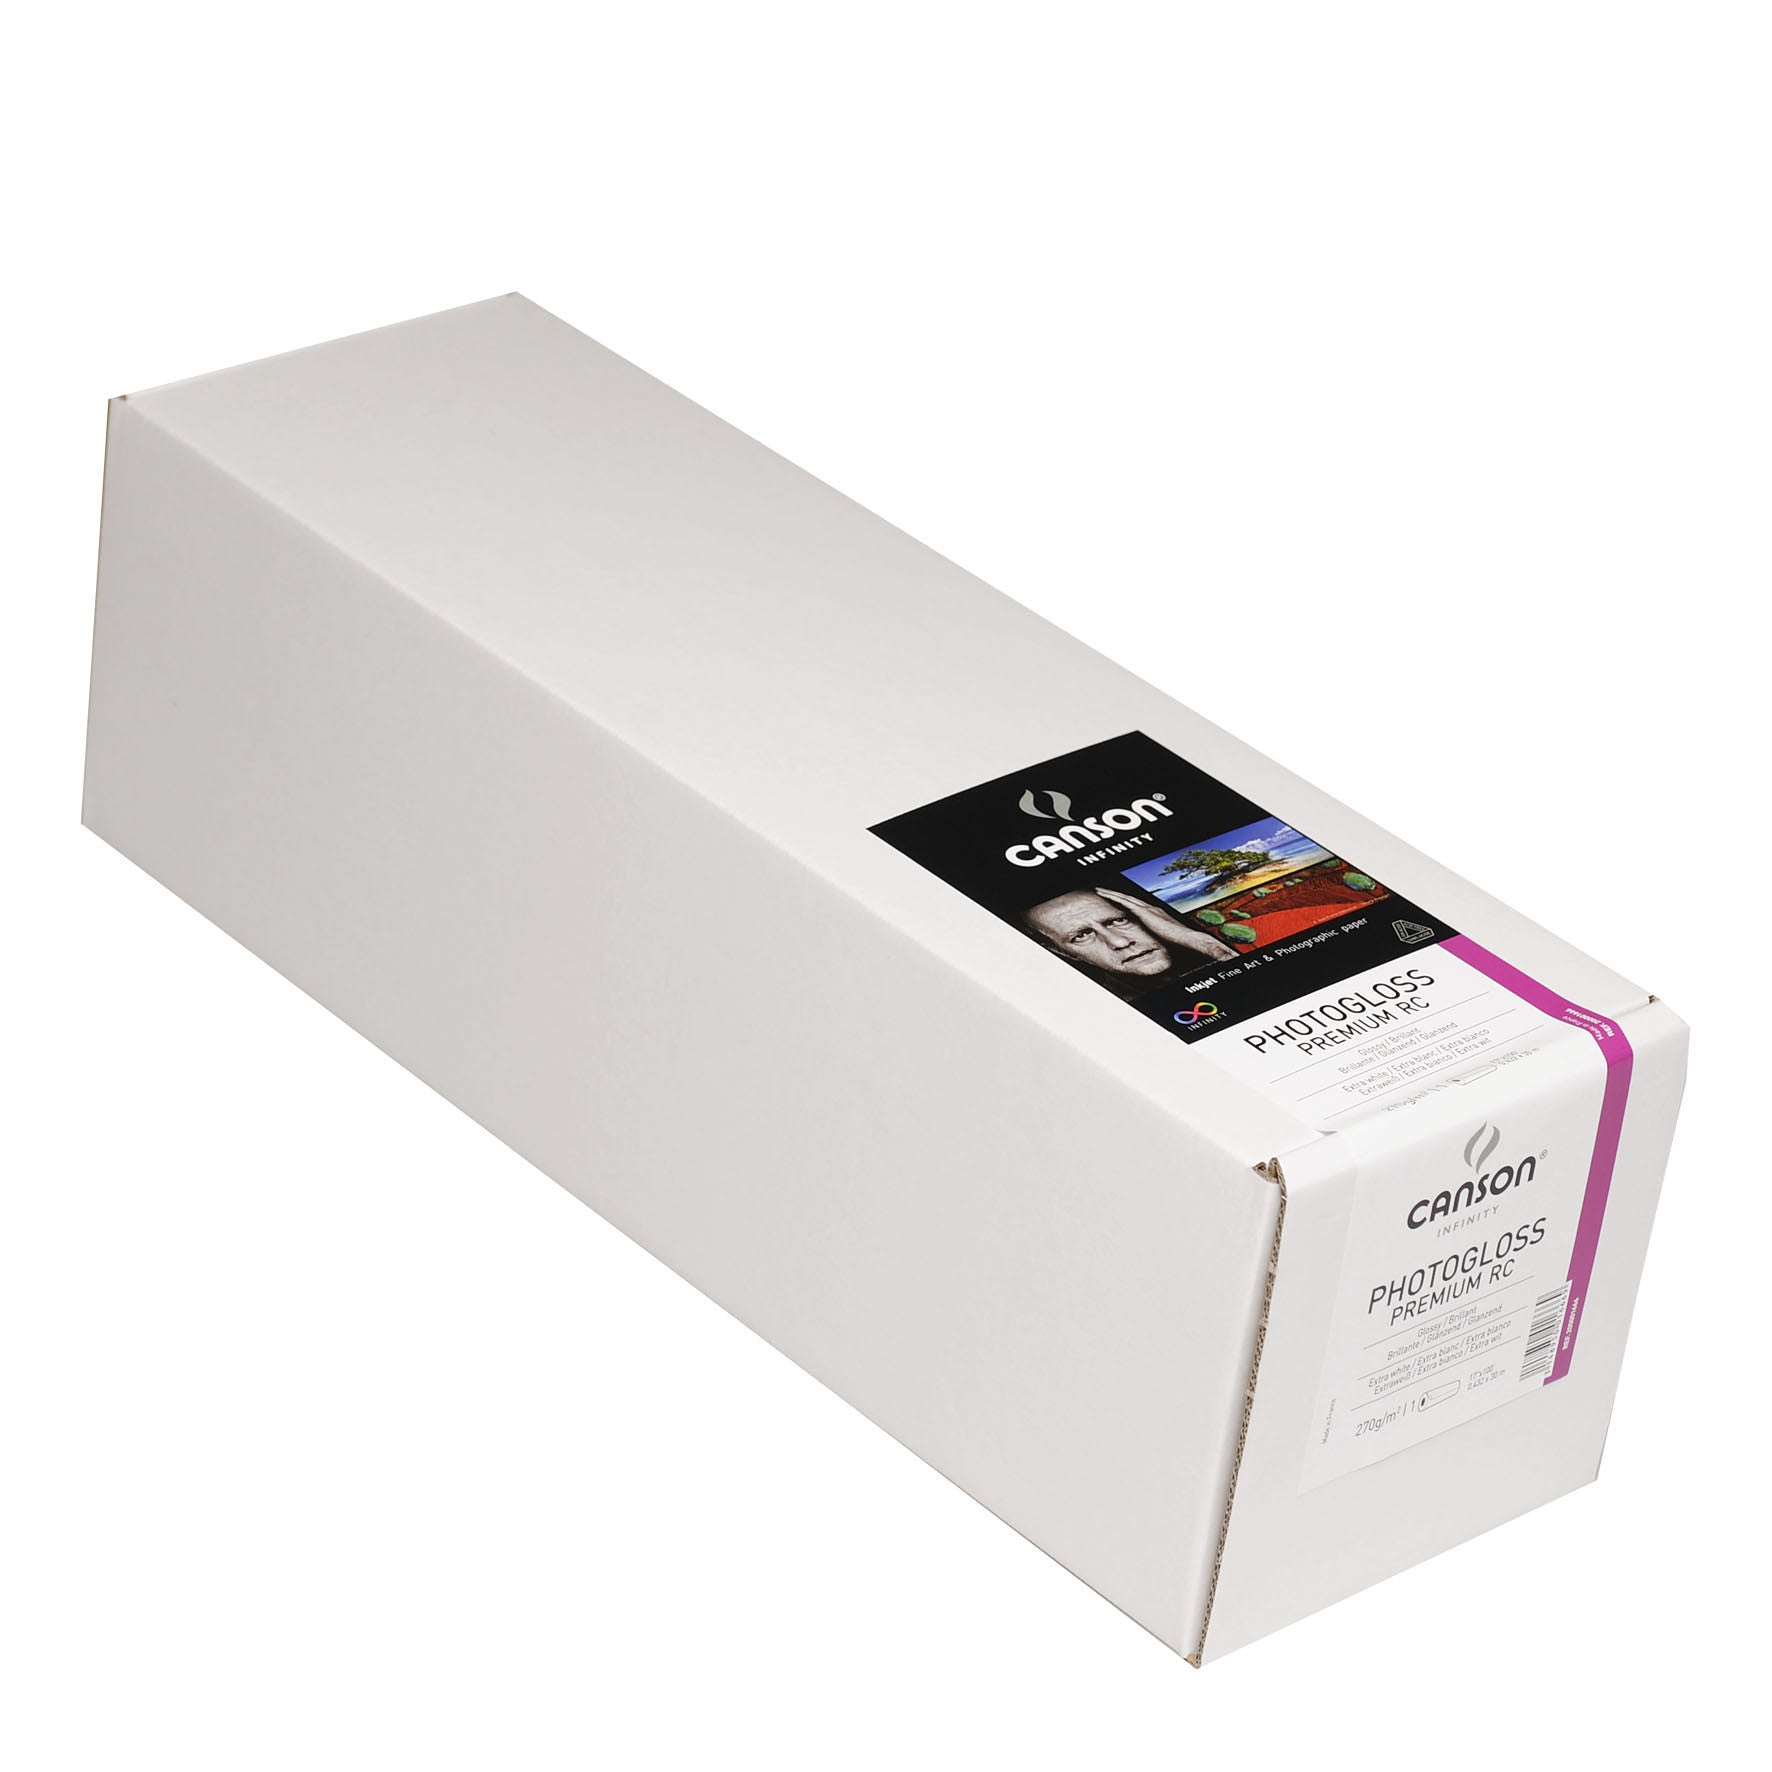 "Canson Infinity Photo Gloss Premium RC - 270gsm - 17""X100' roll"